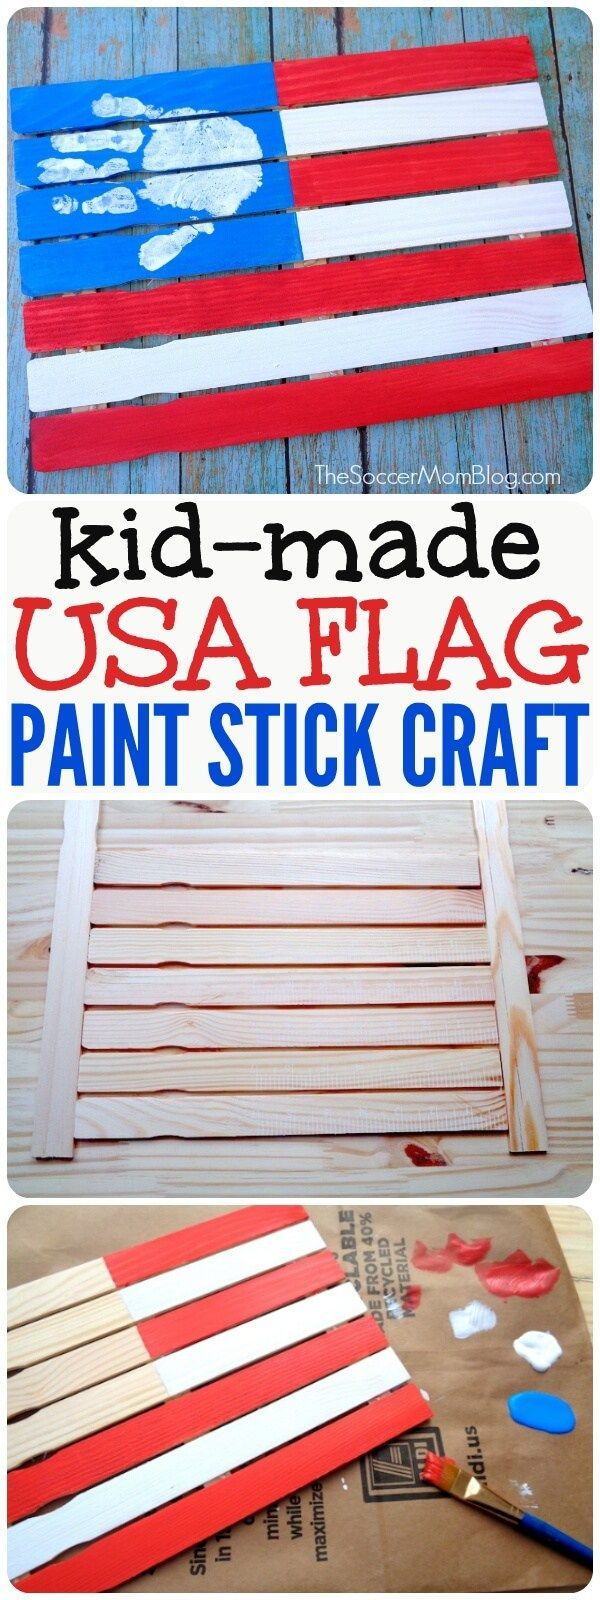 This Wooden American Flag is an easy kids craft that adds an special touch to holiday decor. Makes an adorable keepsake gifts for family & friends!